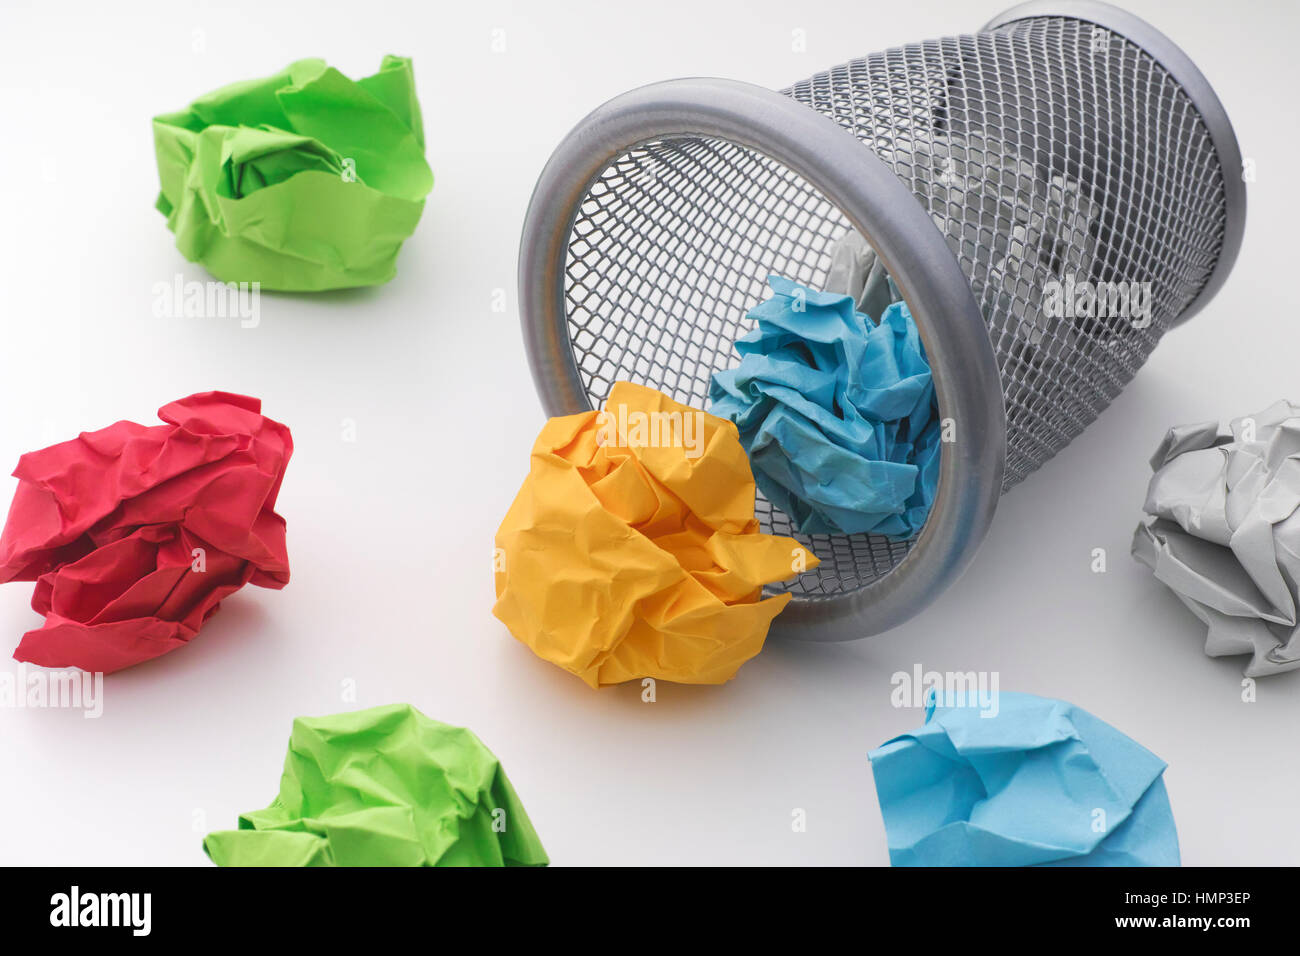 Colorful paper balls rolling out of trash can. Idea Concept. - Stock Image